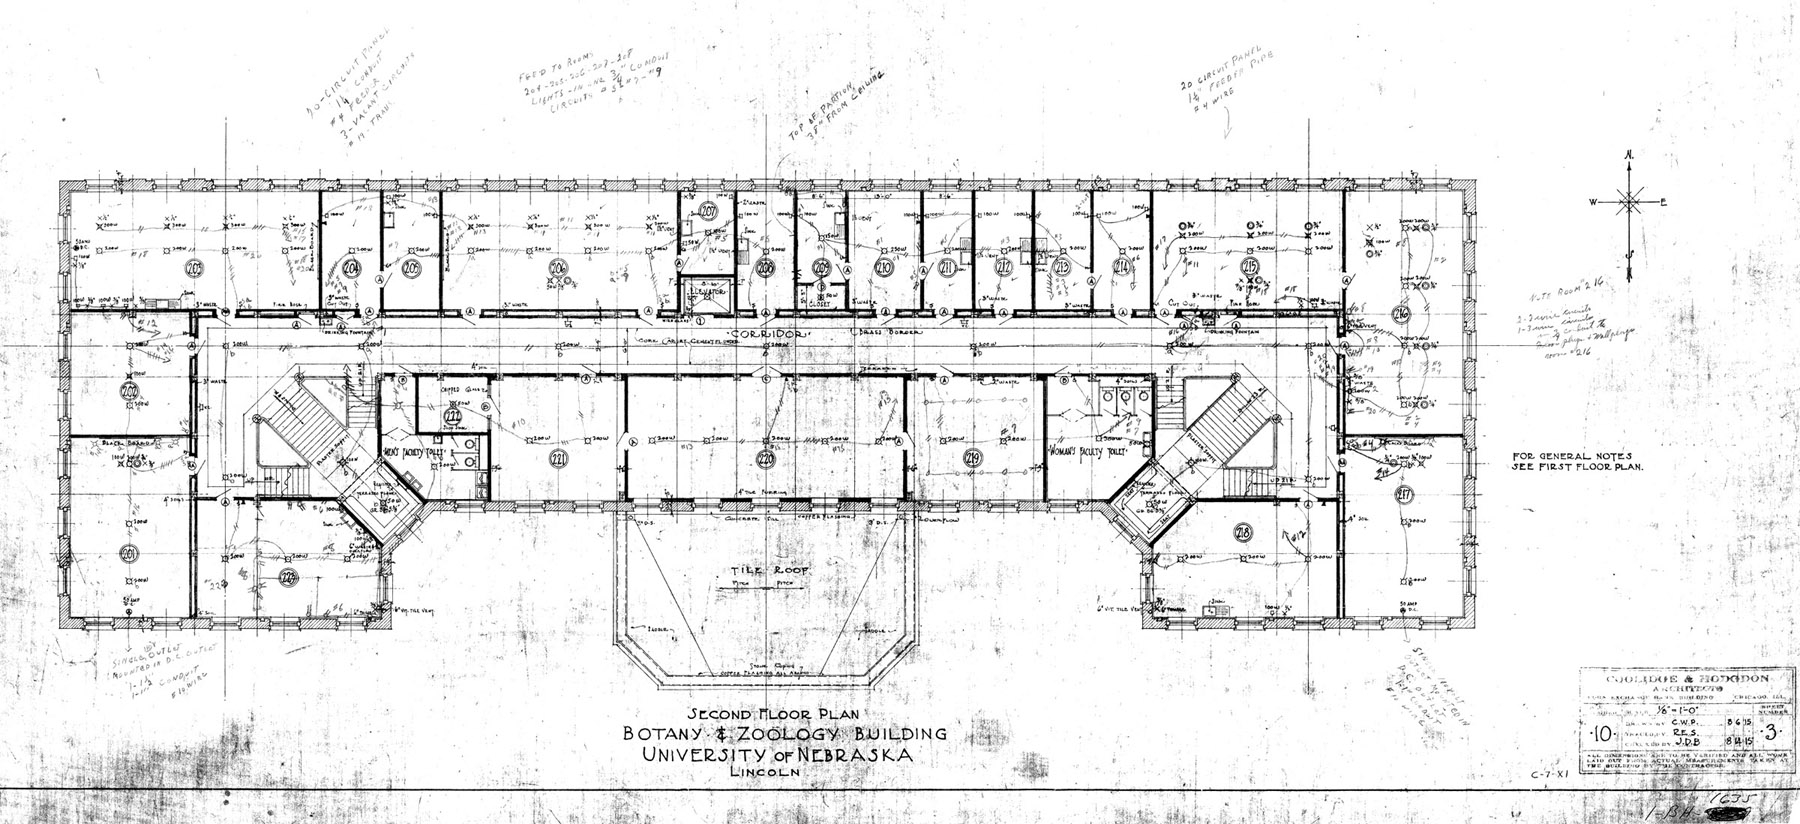 UNL Historic Buildings Bessey Hall Building Plans